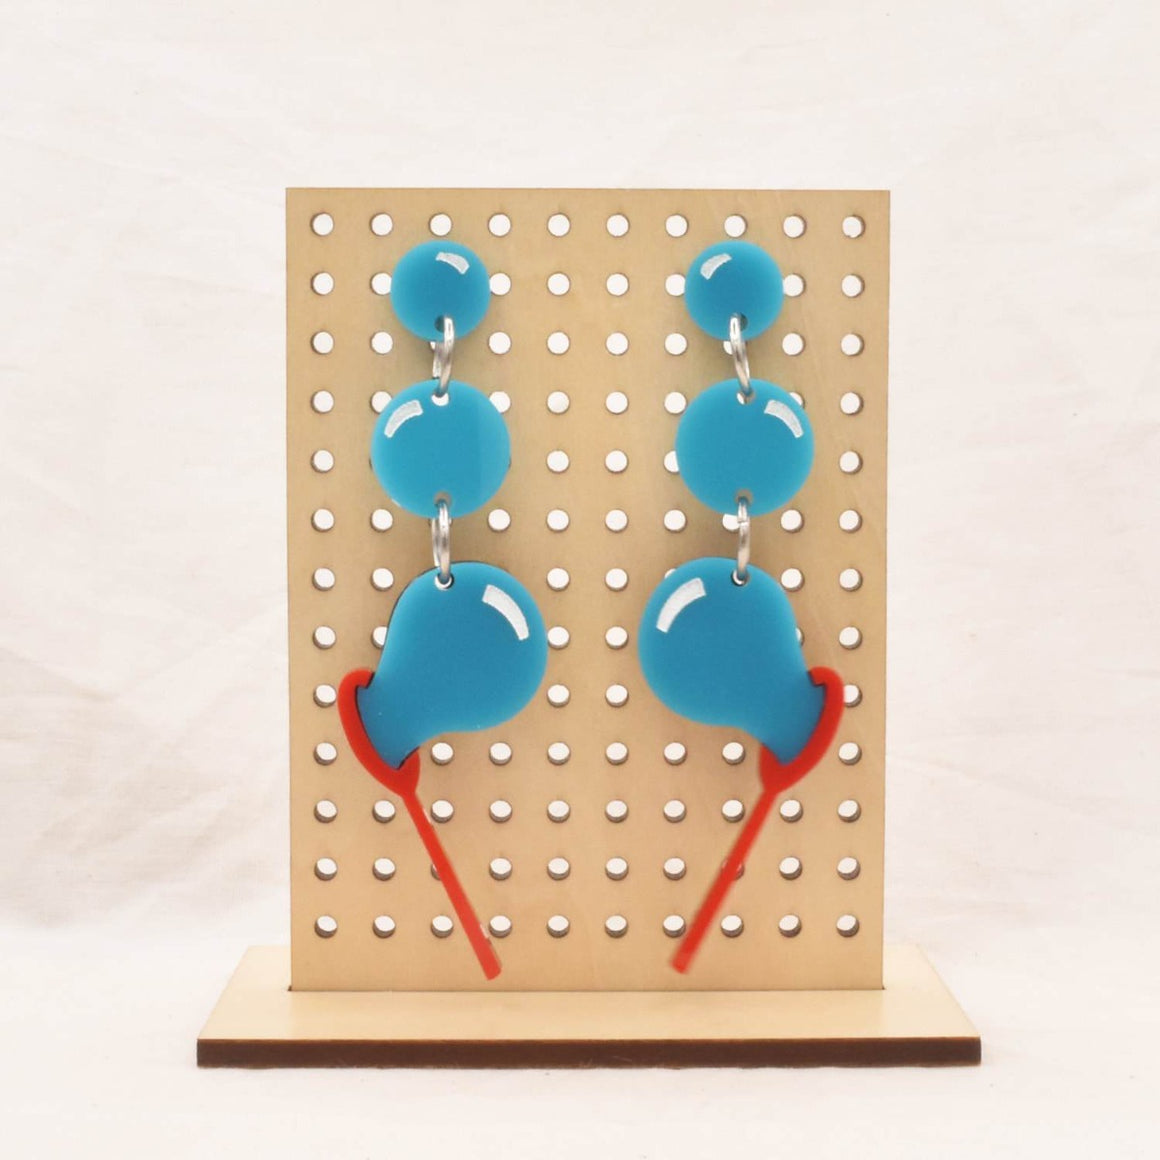 Image featuring a tanned wood stand holding two graphically illustrated earrings both featuring a row of blue bubble balloon with a red bubble blowing wand